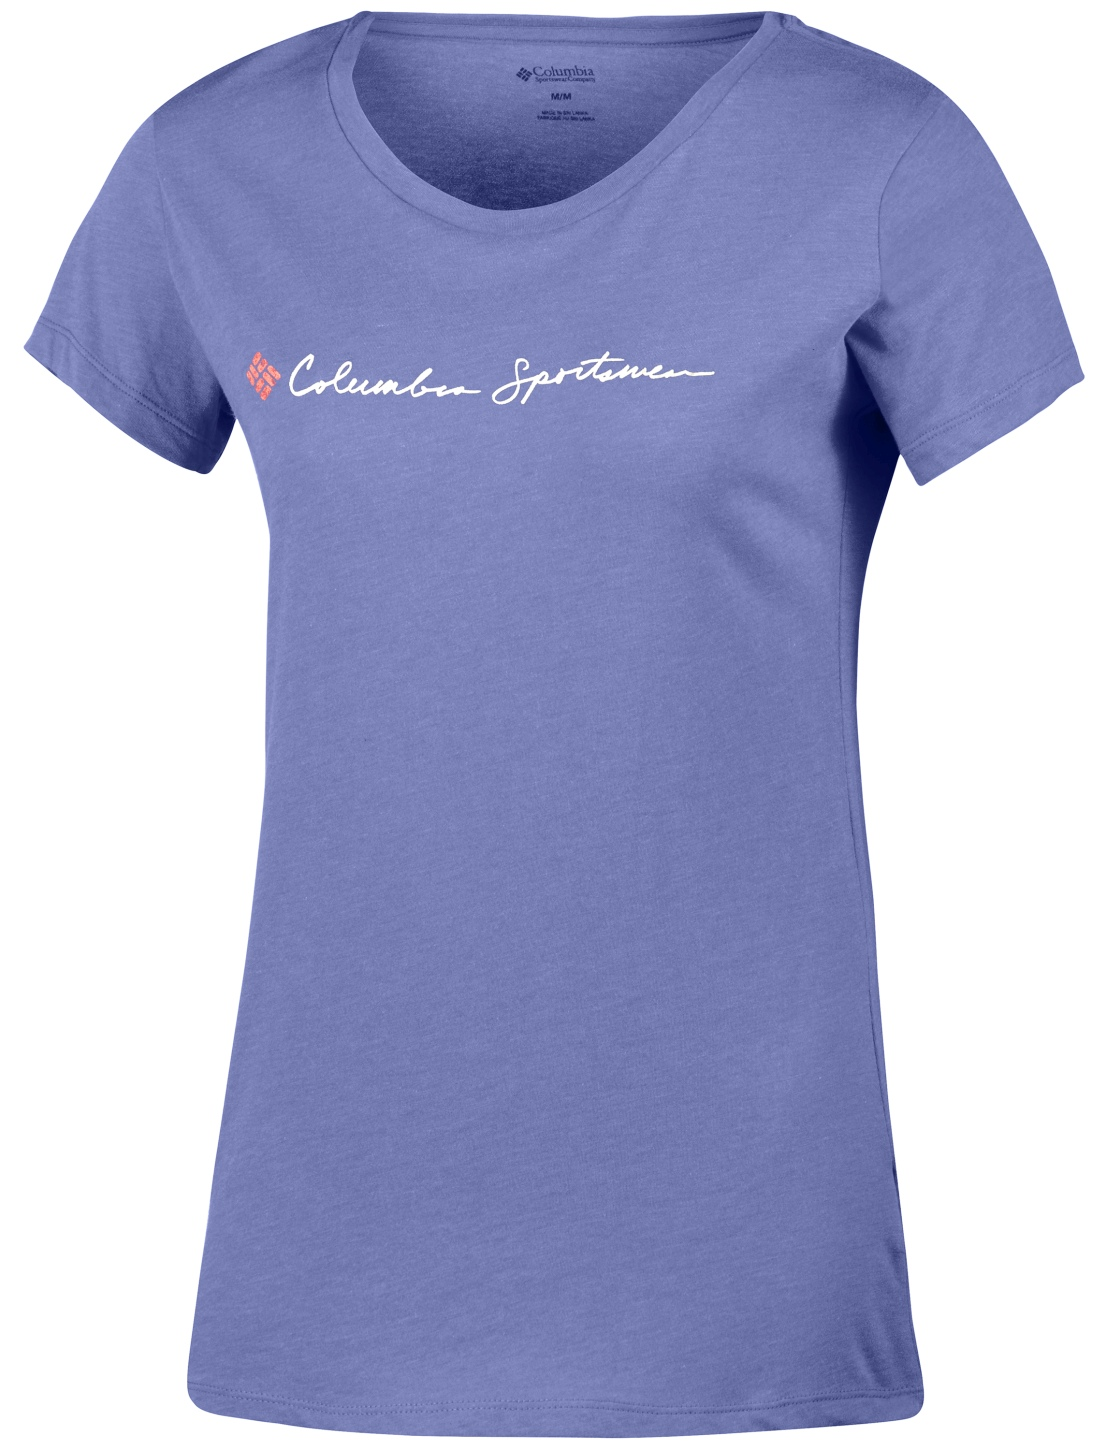 Columbia Women's CSC Script Logo Short Sleeve T-shirt Bluebell-30